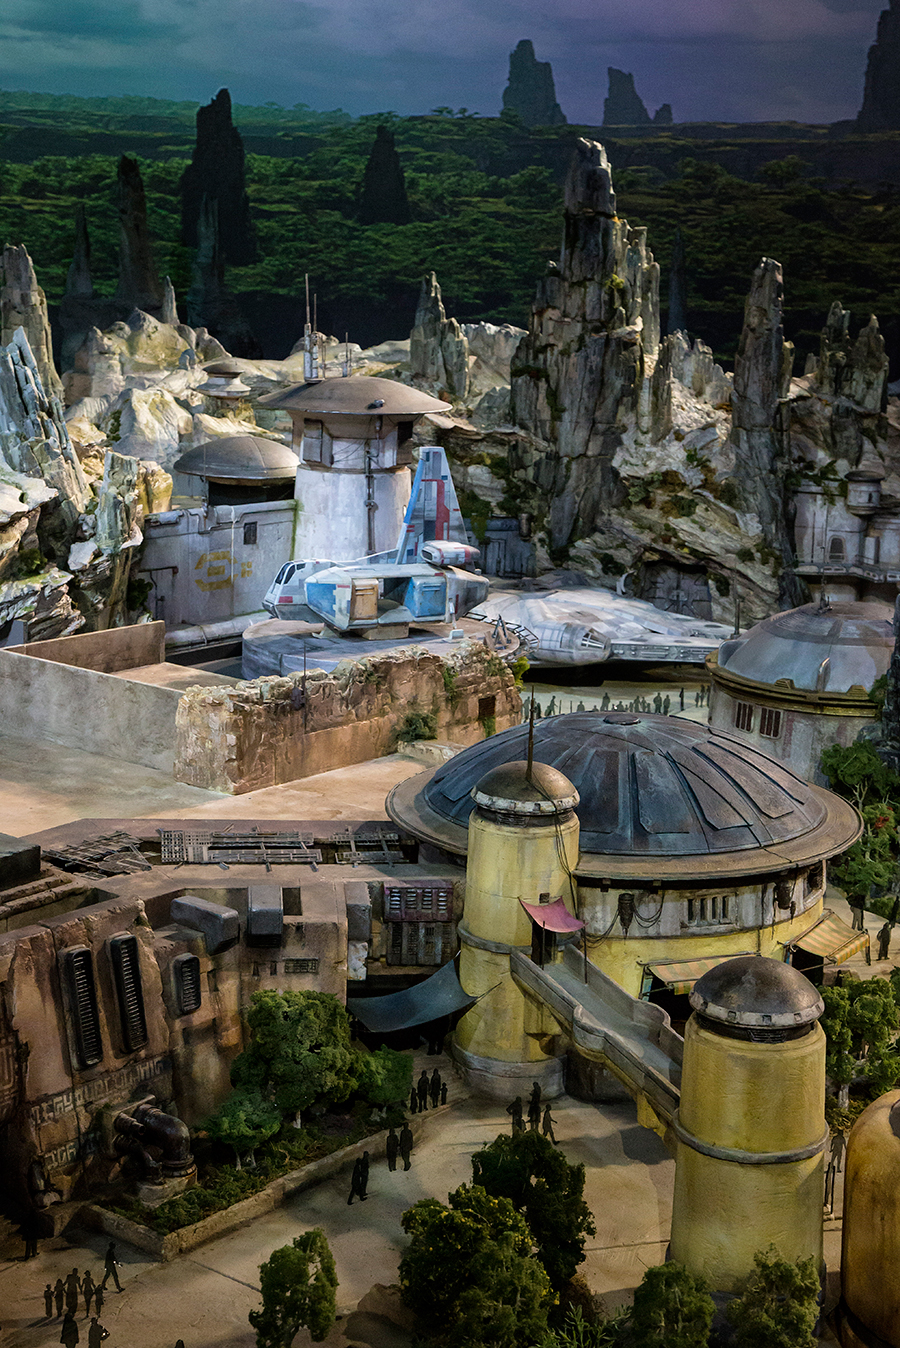 First Look: Sneak a Peek at Disney Park's Star Wars Land-Inspired Model